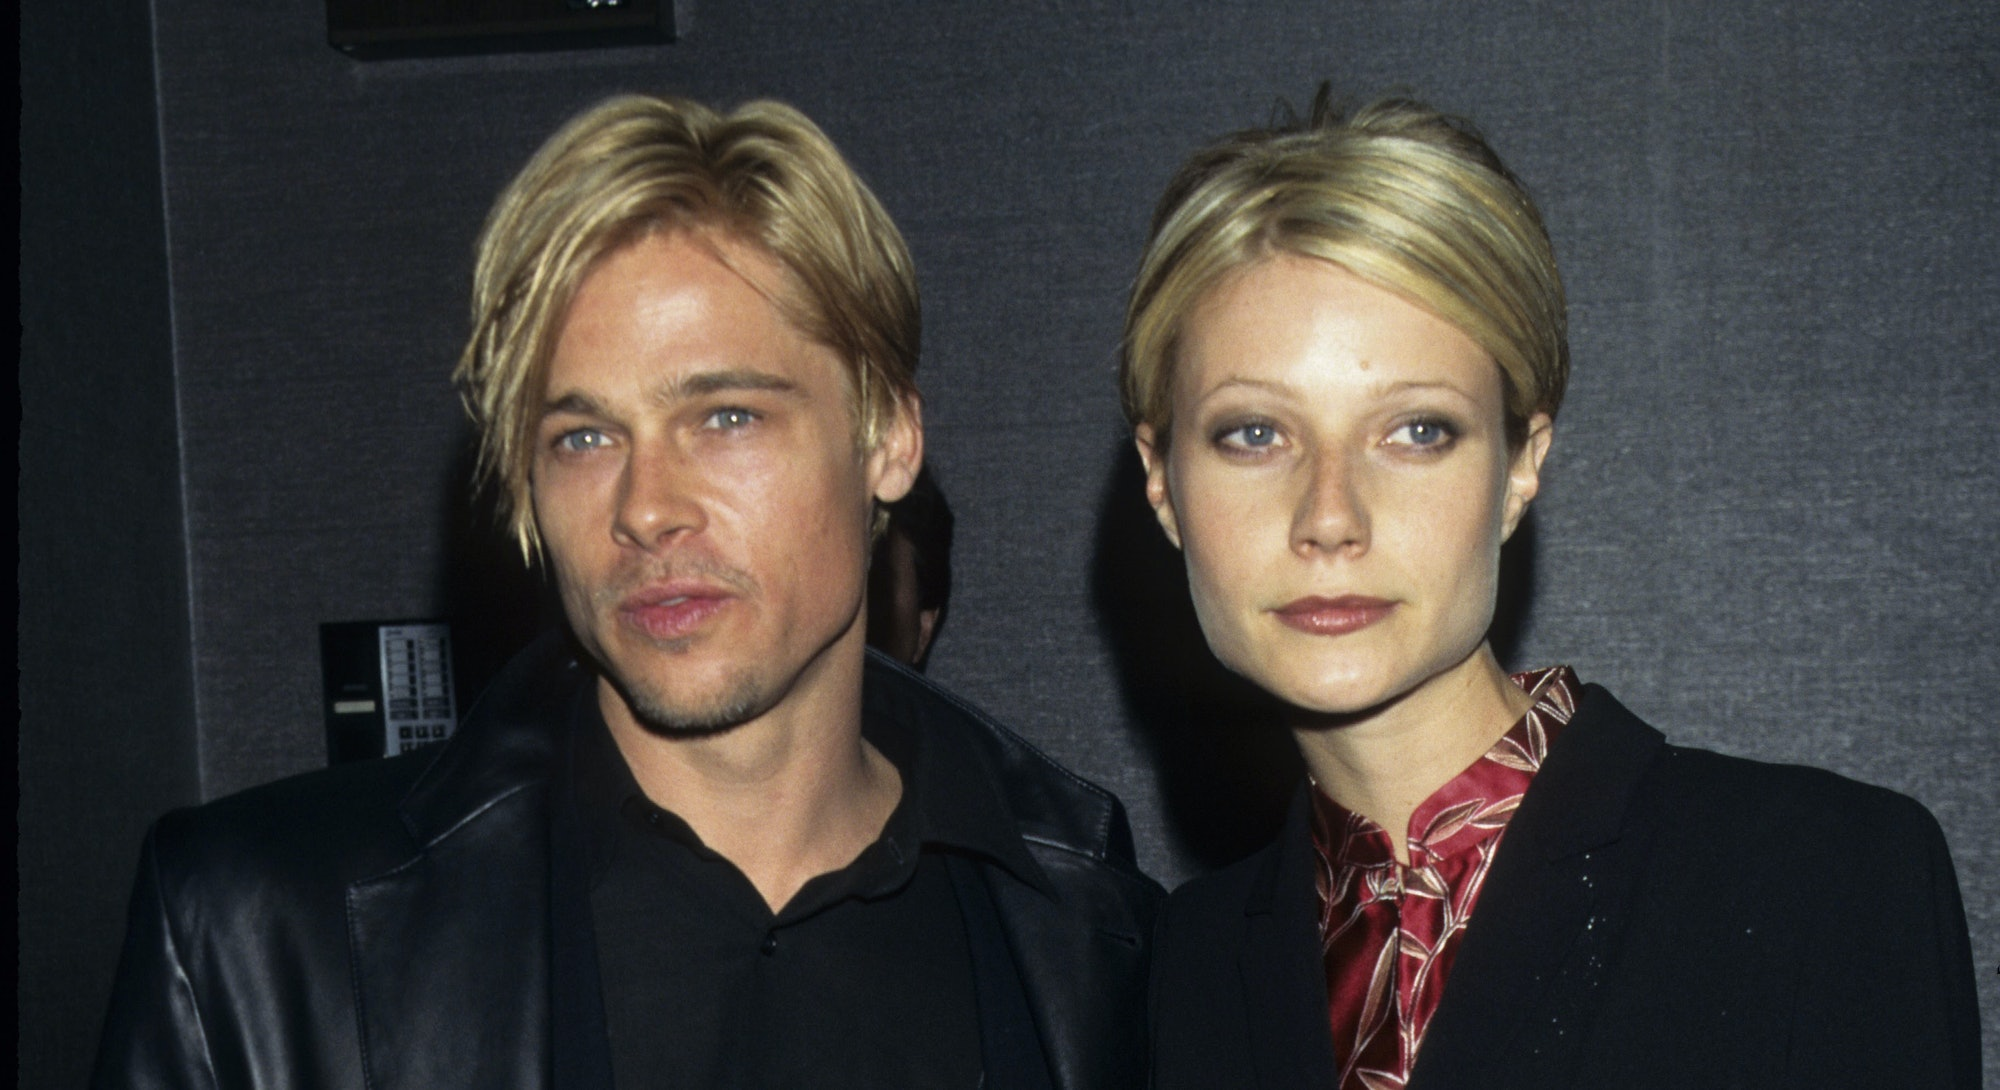 Brad Pitt and Gwyneth Paltrow had matching Karen haircuts before that style even had that name.